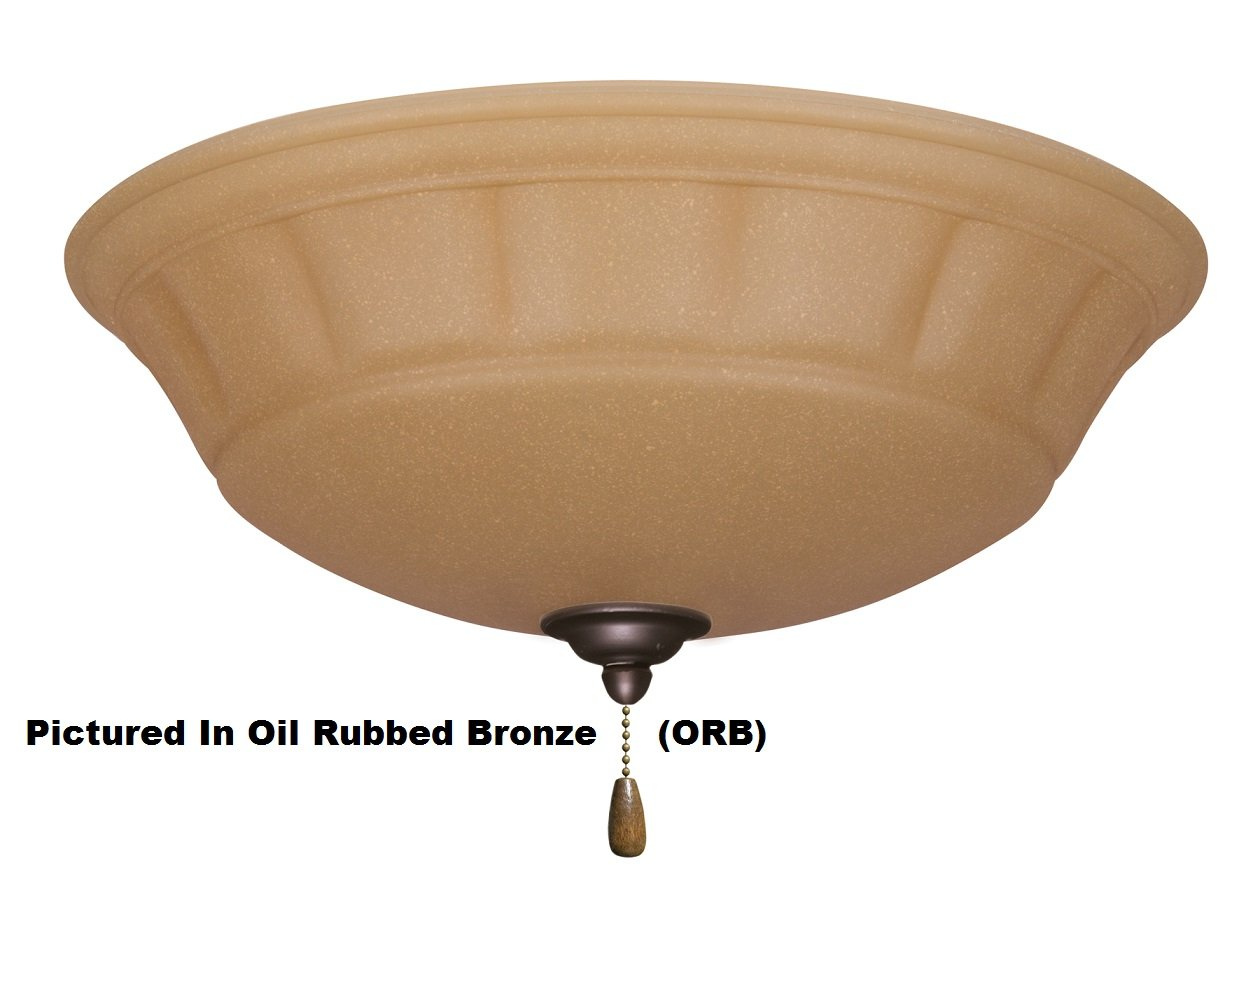 Emerson Ceiling Fans LK140BS Grande Amber Scavo Light Fixture for Ceiling Fans, Candelabra, Brushed Steel Ceiling Light with Pull Chain